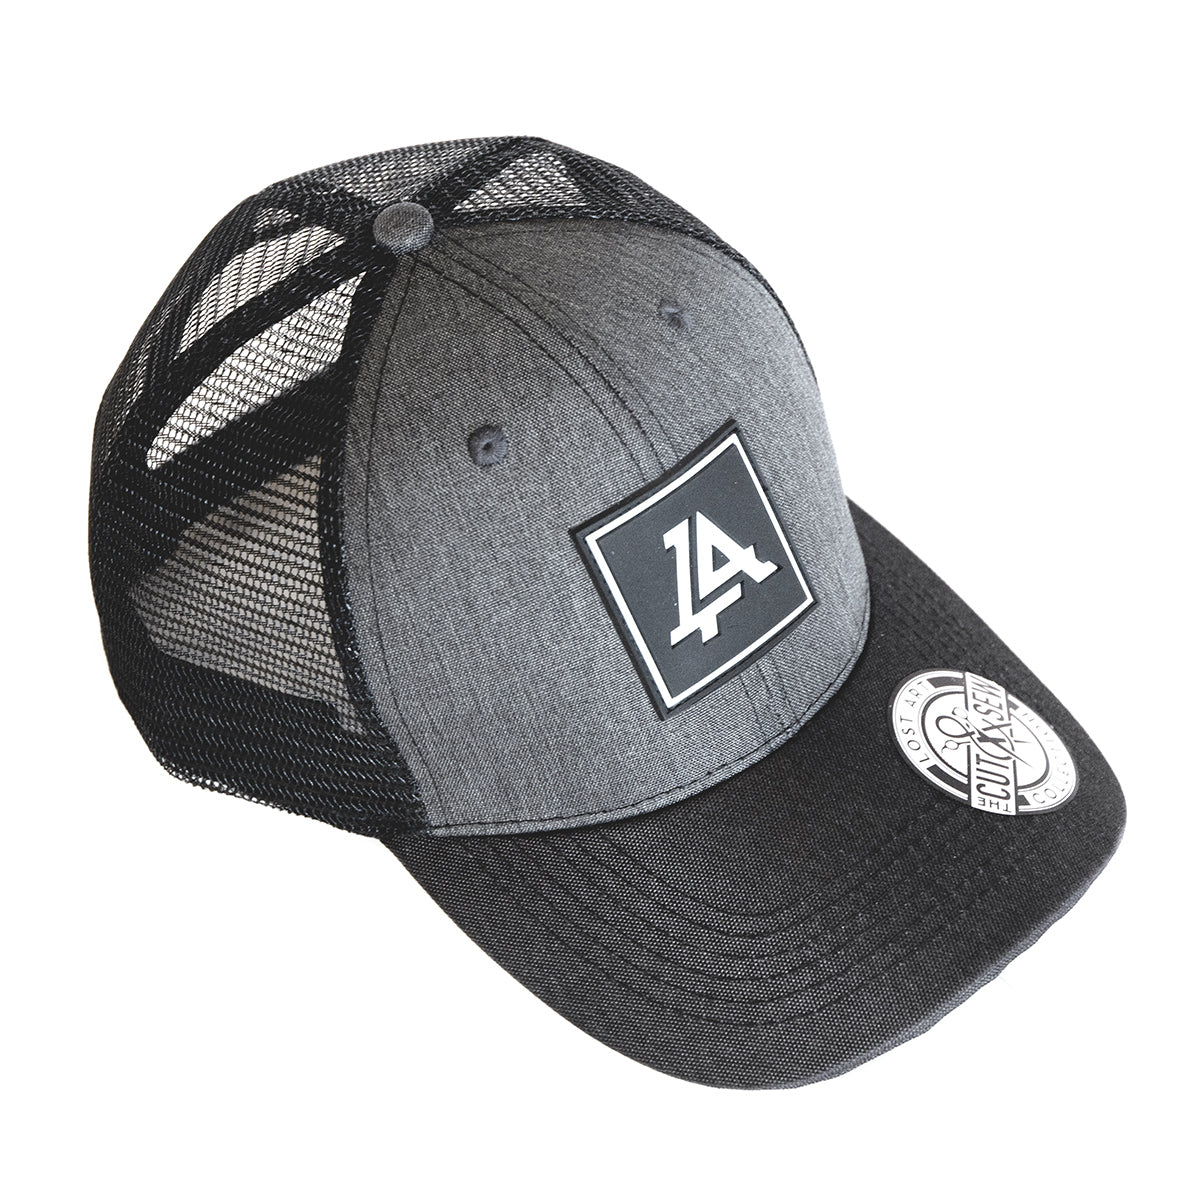 Lost Art Canada - grey and black patch curved snapback hat front view